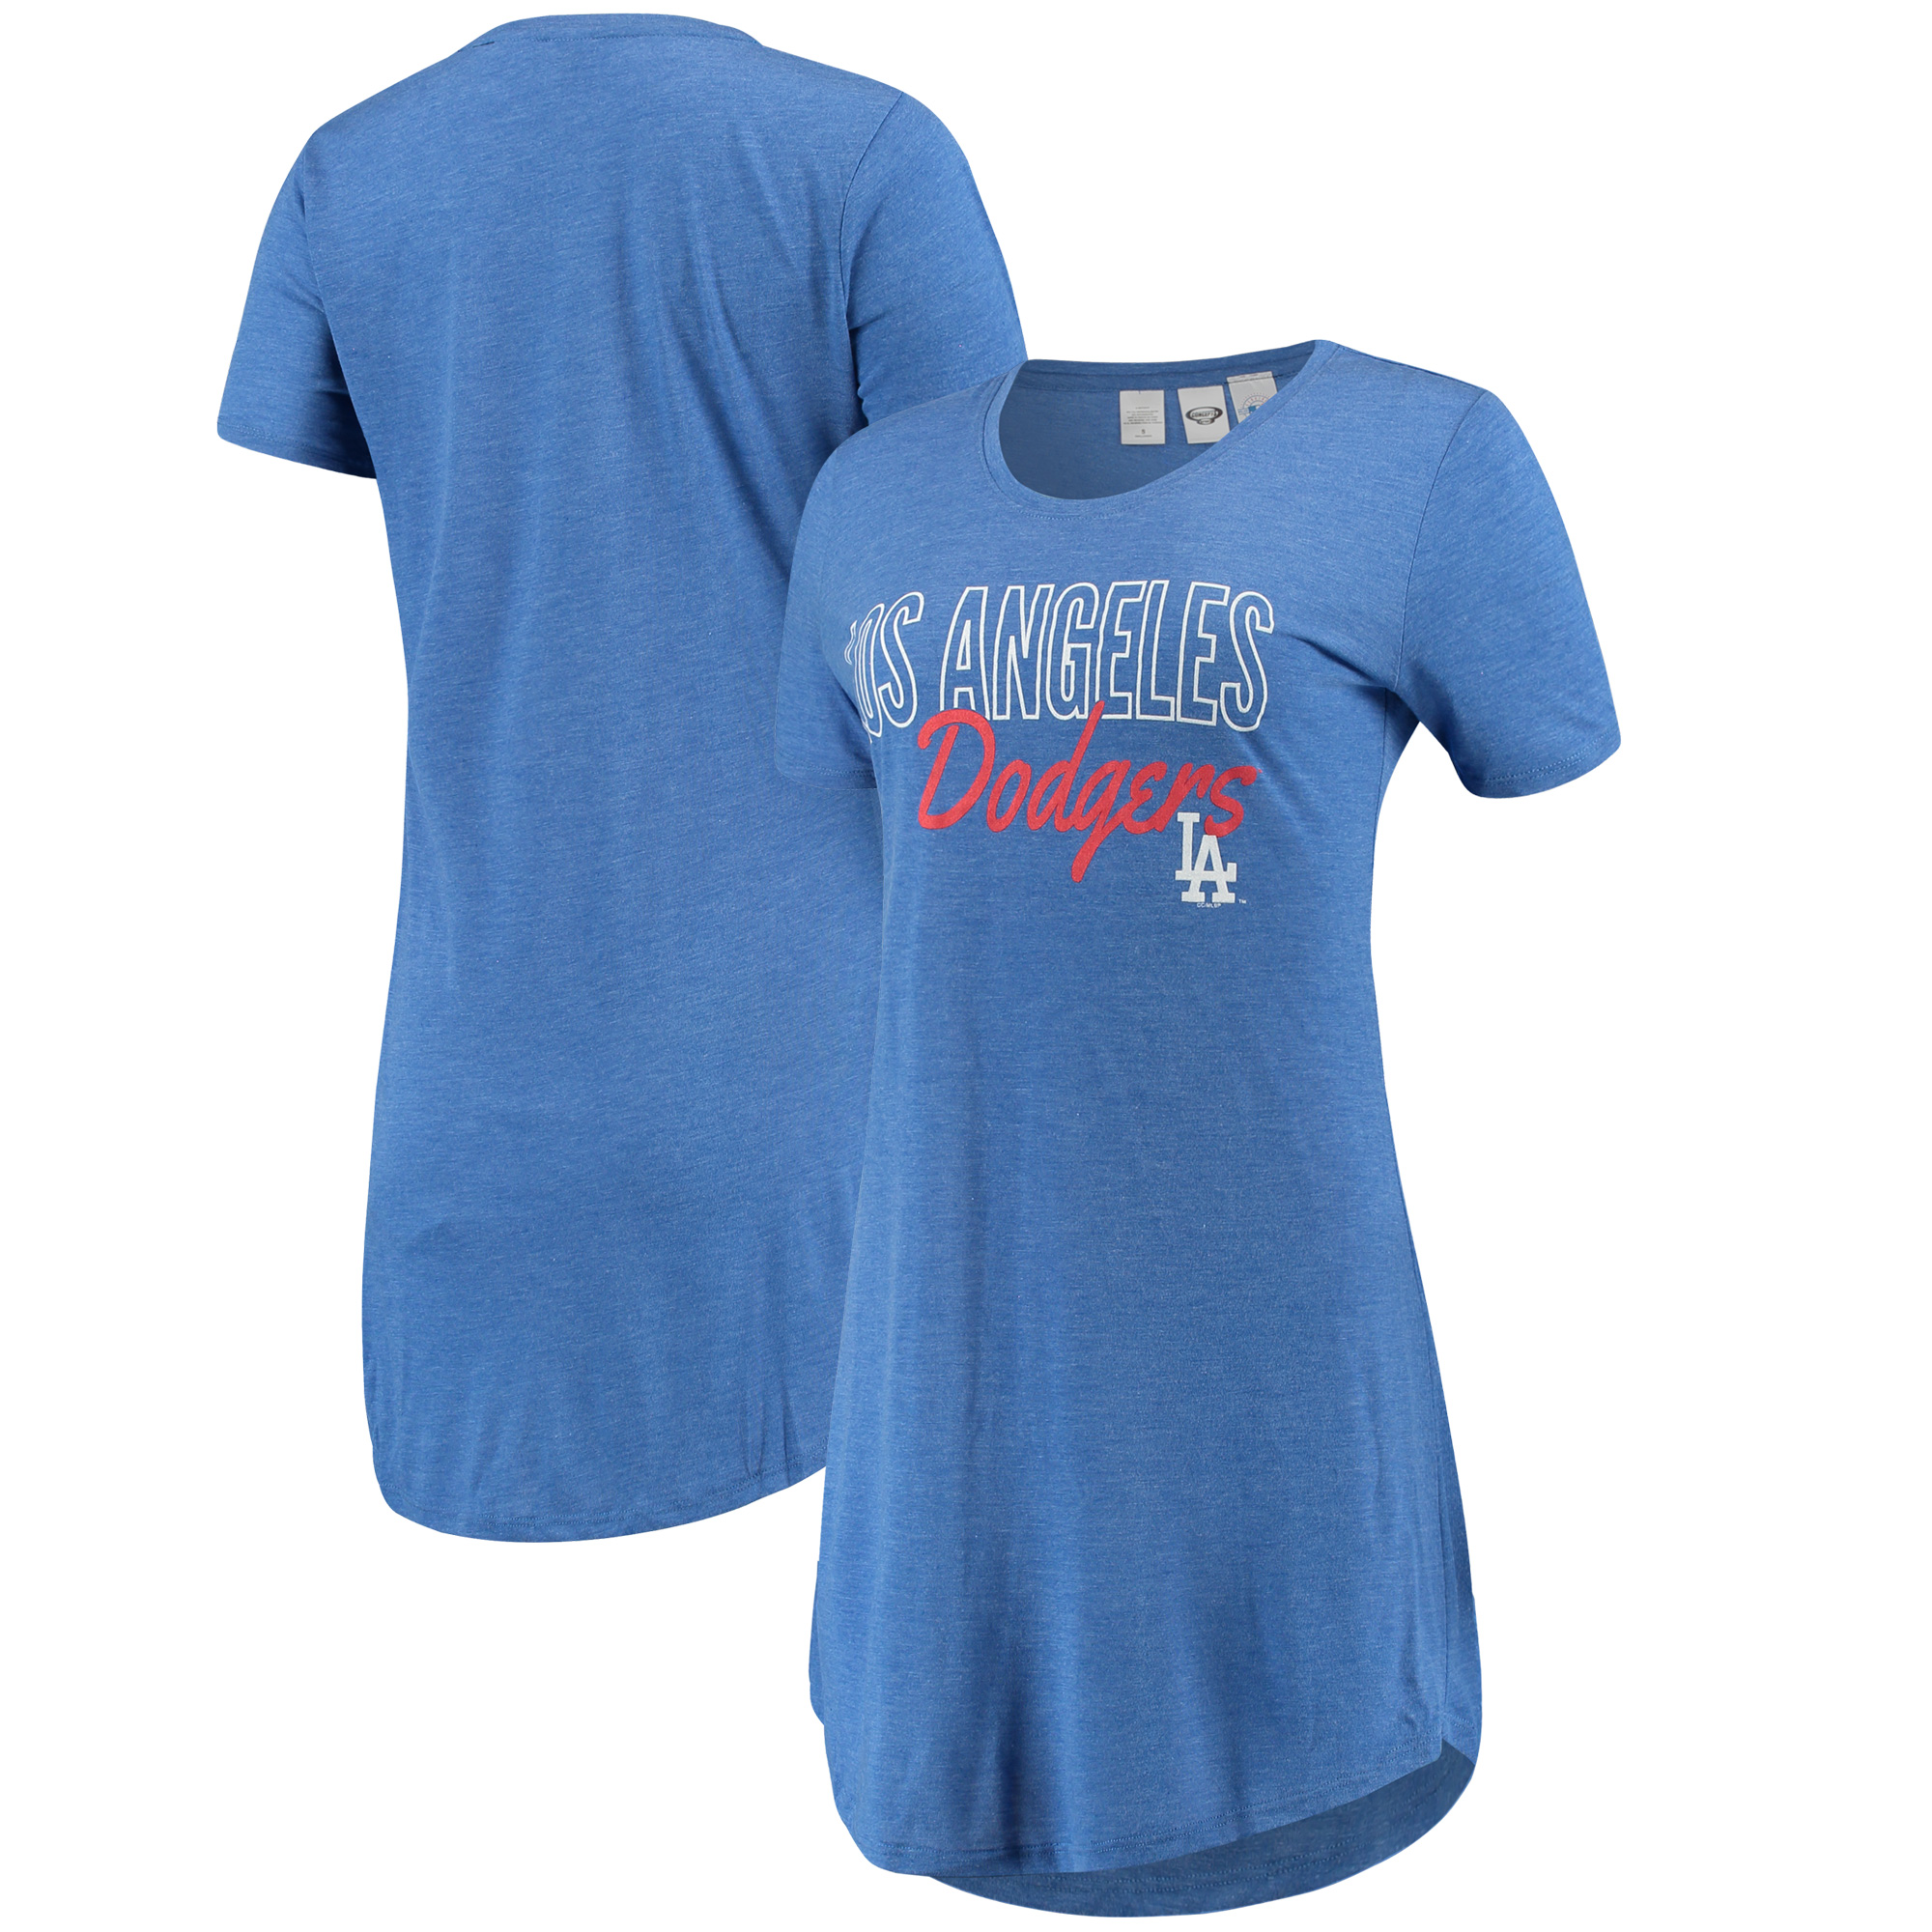 Los Angeles Dodgers Concepts Sport Women's Knit Nightshirt - Royal